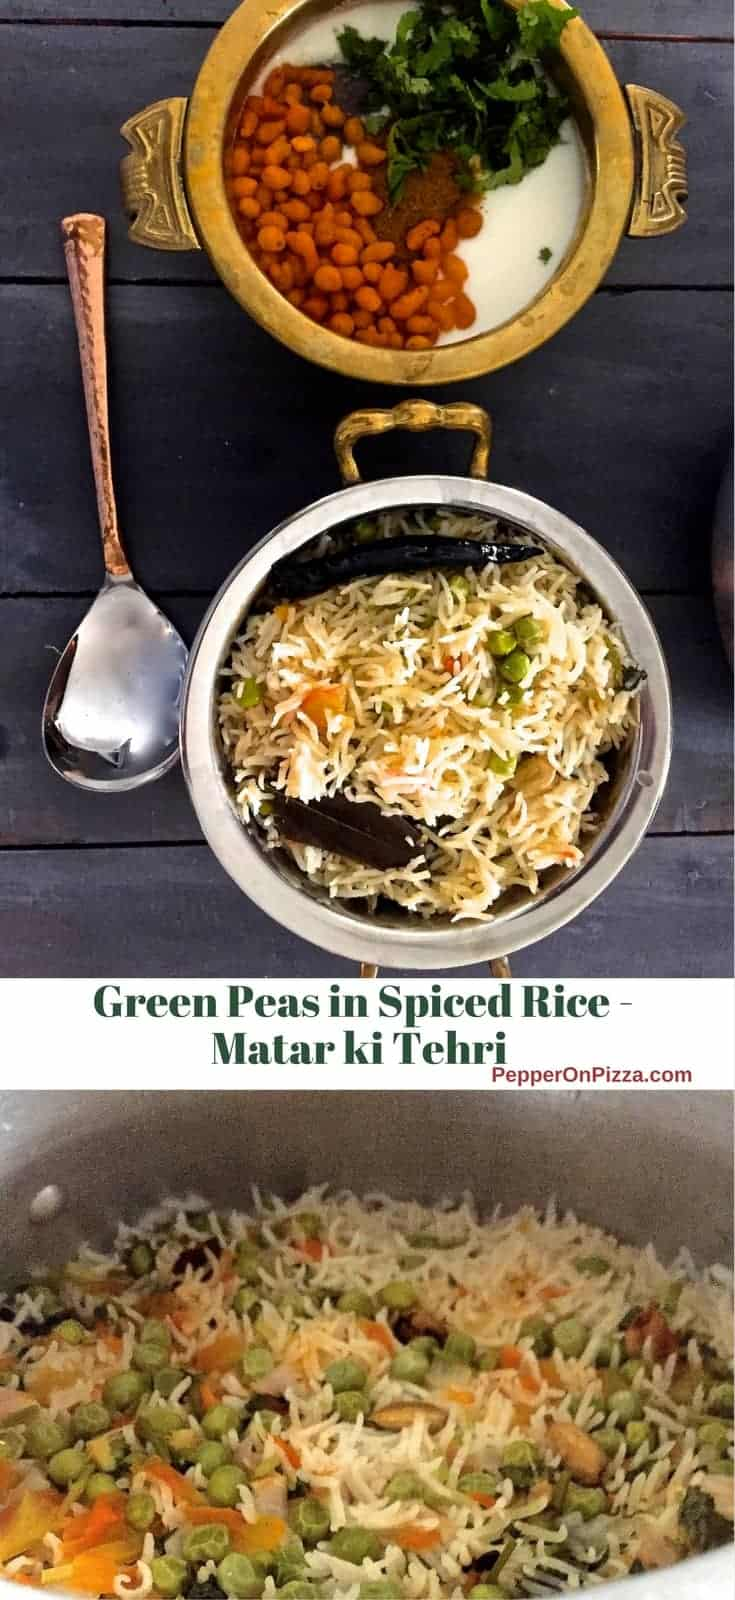 Matar ki Tehri- fragrant rice dish from Eastern Uttar Pradesh in India, made with seasonal Green peas cooked with Basmati rice in Desi Ghee and subtly spiced